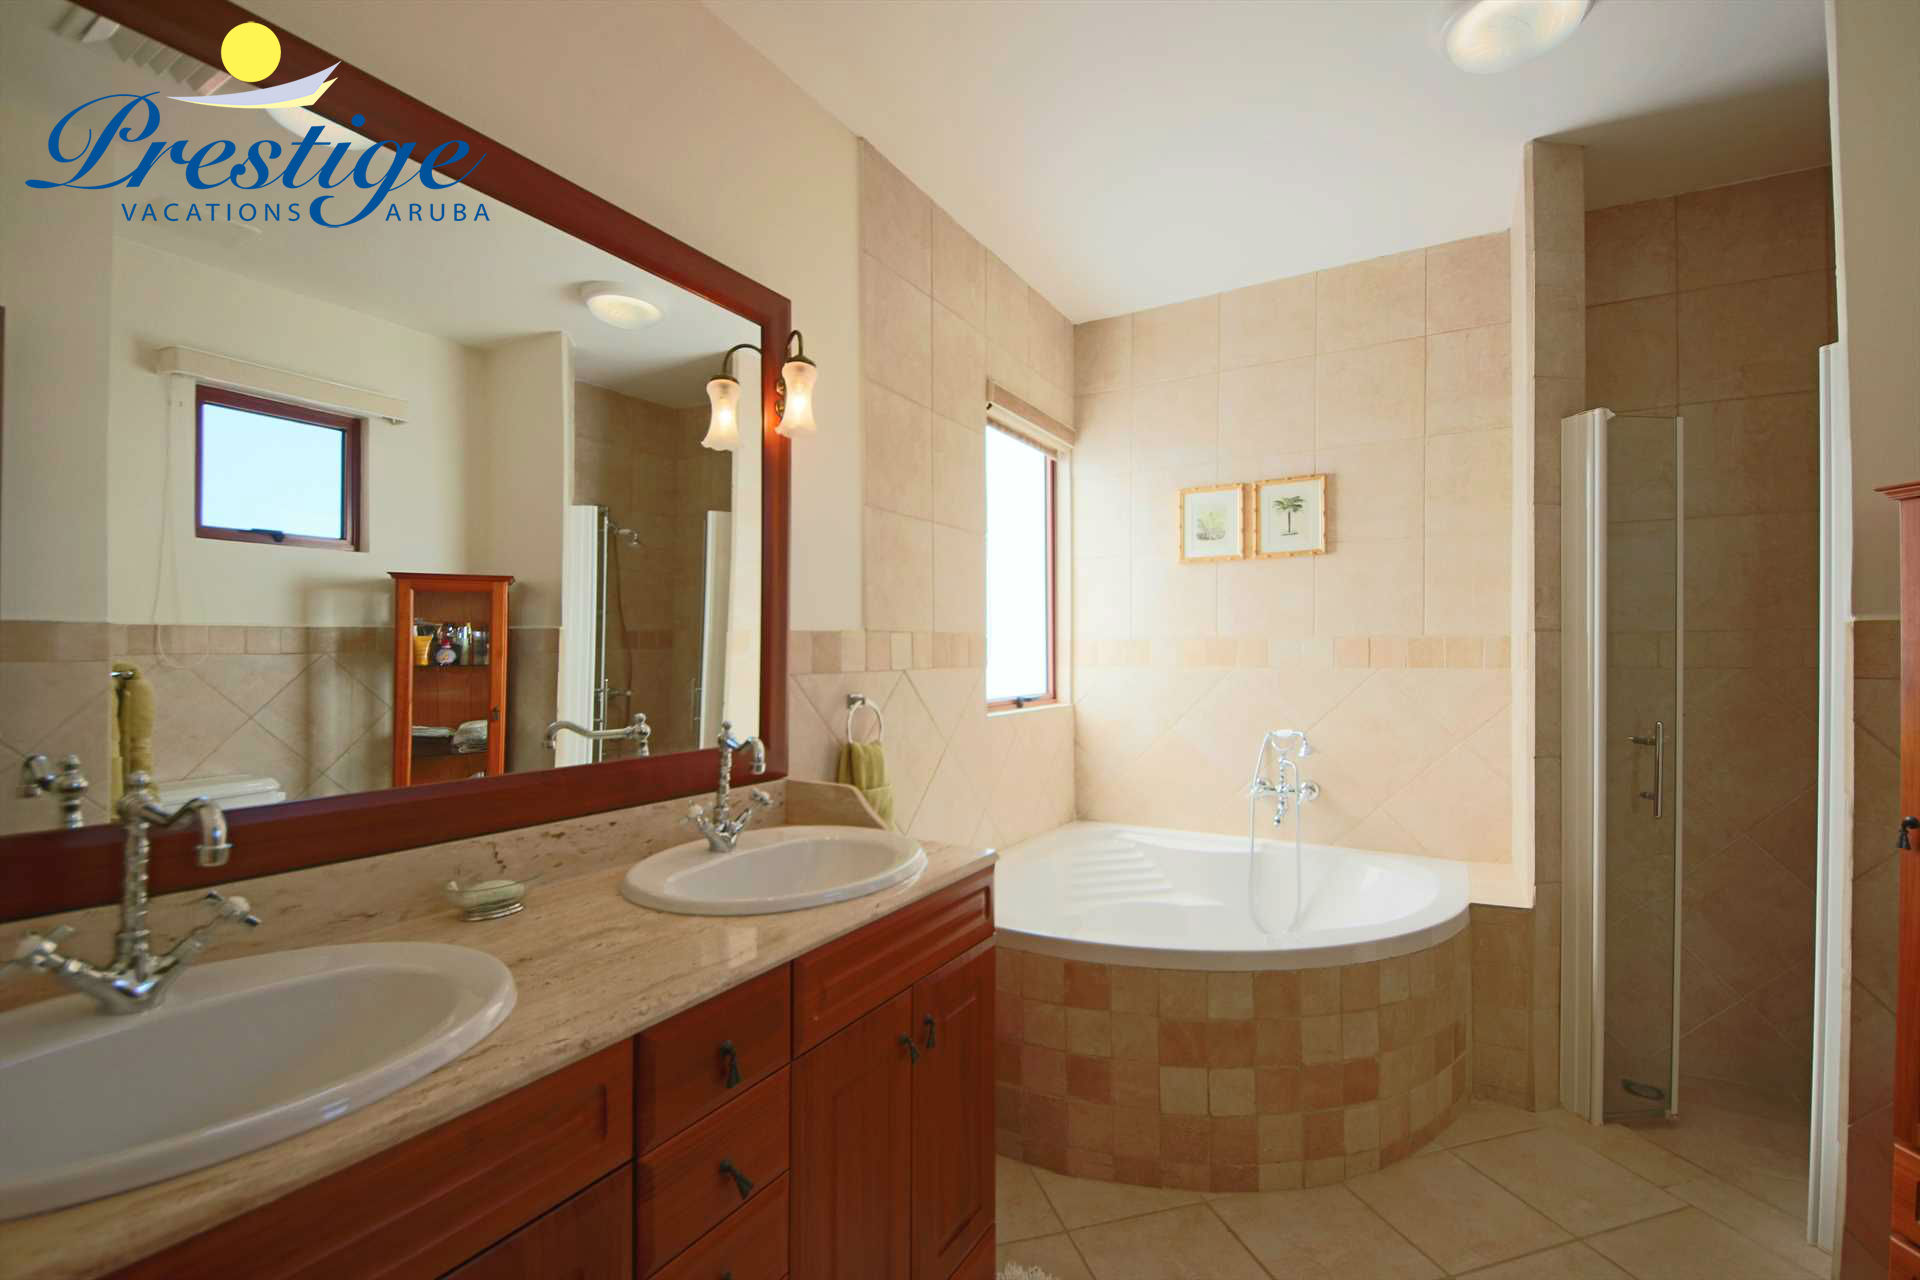 The master en-suite bathroom with a soaking tub and a separate shower